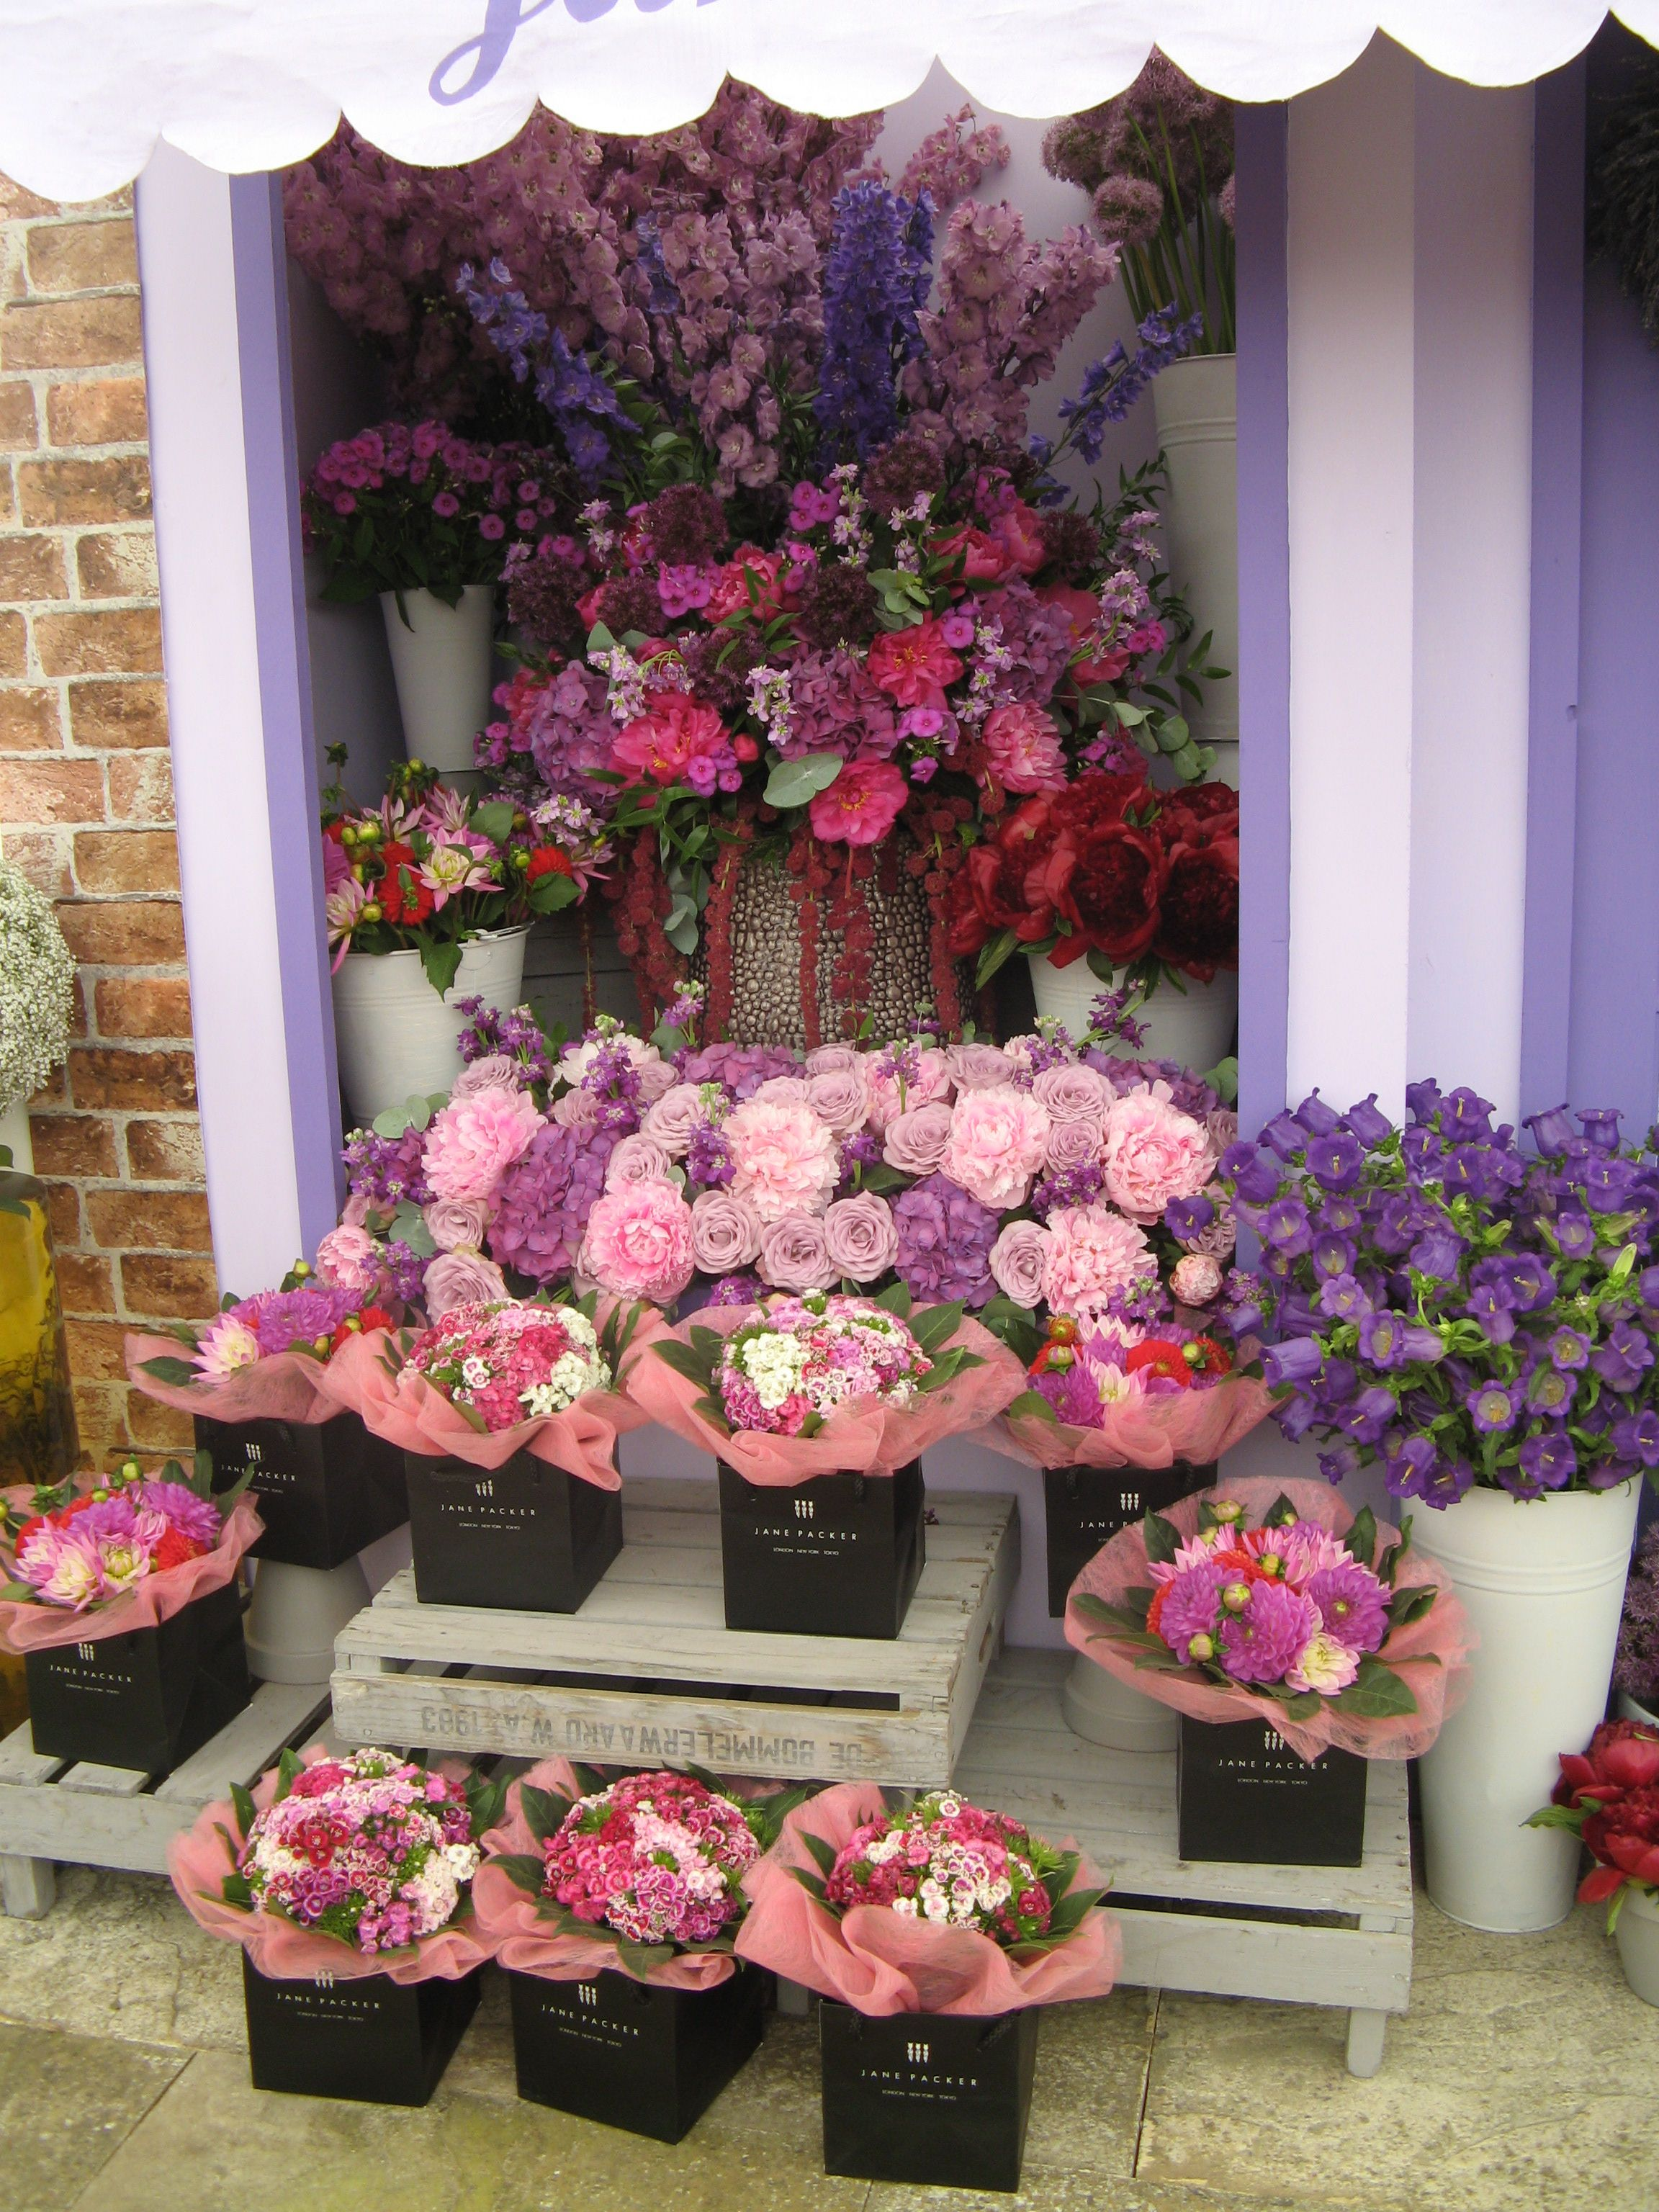 Vintage flower shop display by Jenny Packham Hampton Court Flower Show Ph